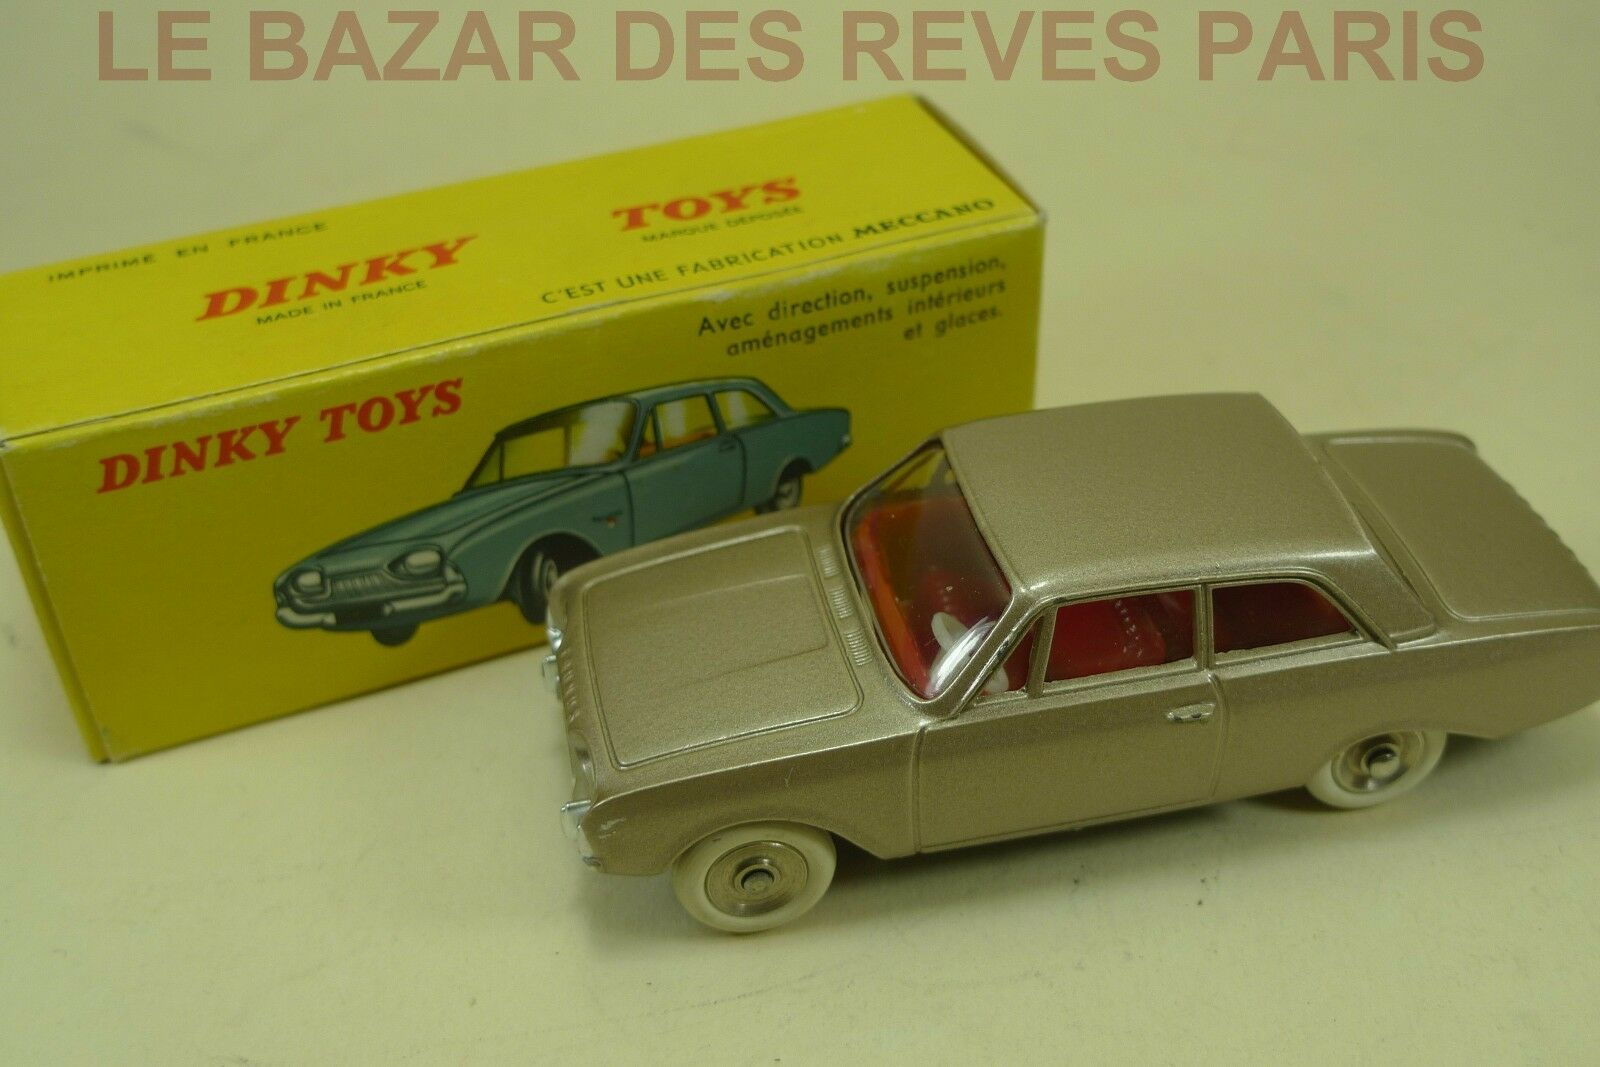 DINKY TOYS FRANCE.  FORD TAUNUS + + + Boite  REF: 559 192918